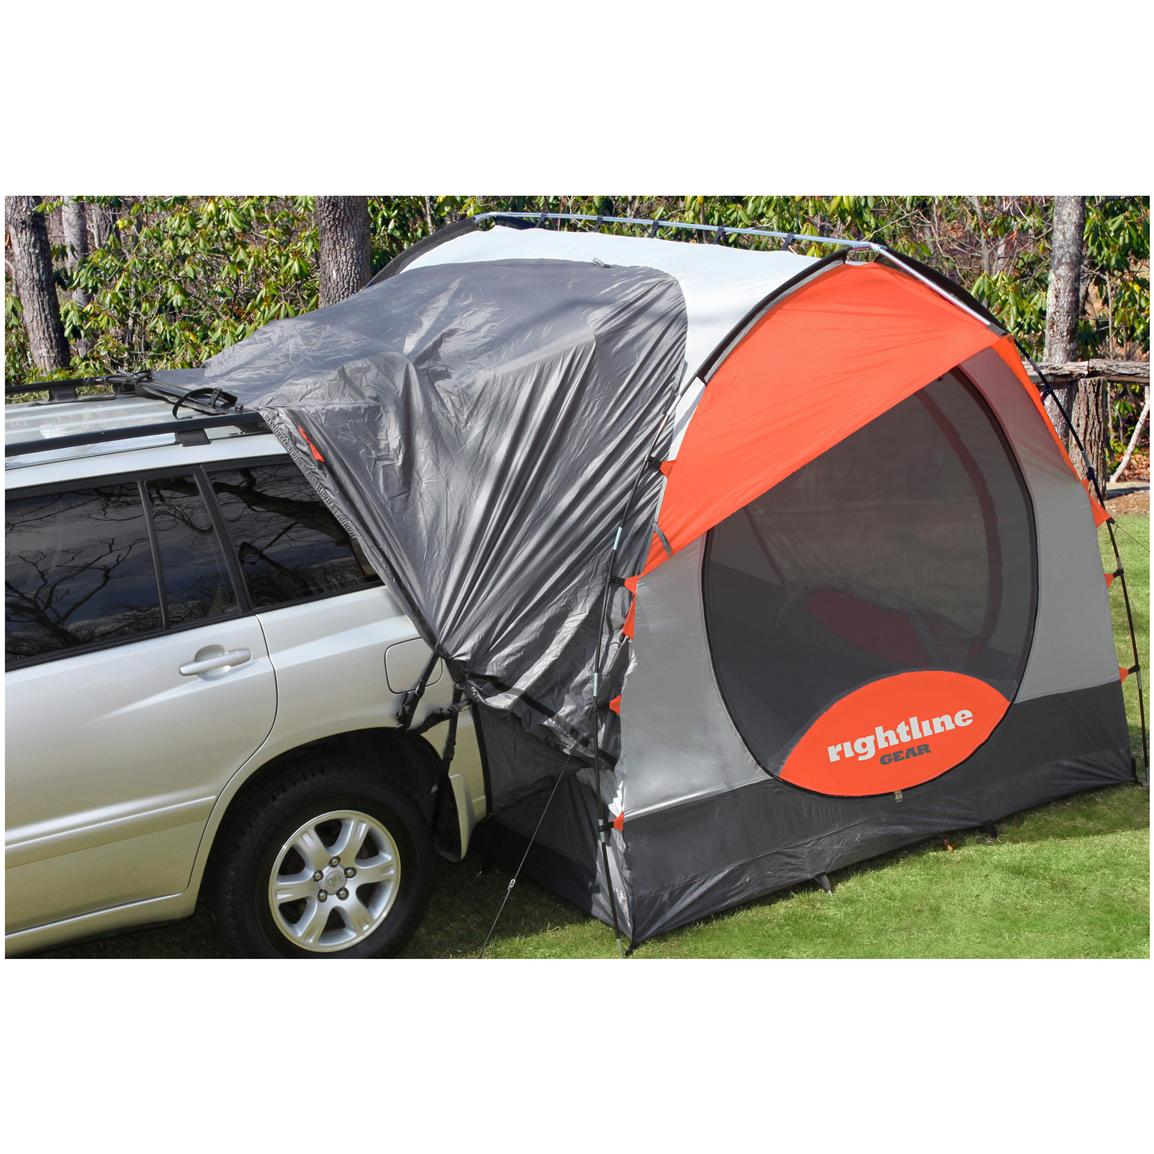 Tent sleeps four (4) vehicle cargo area sleeps two (2)  sc 1 st  Sportsmanu0027s Guide & Rightline Gear® SUV Tent - 584419 Truck Tents at Sportsmanu0027s Guide